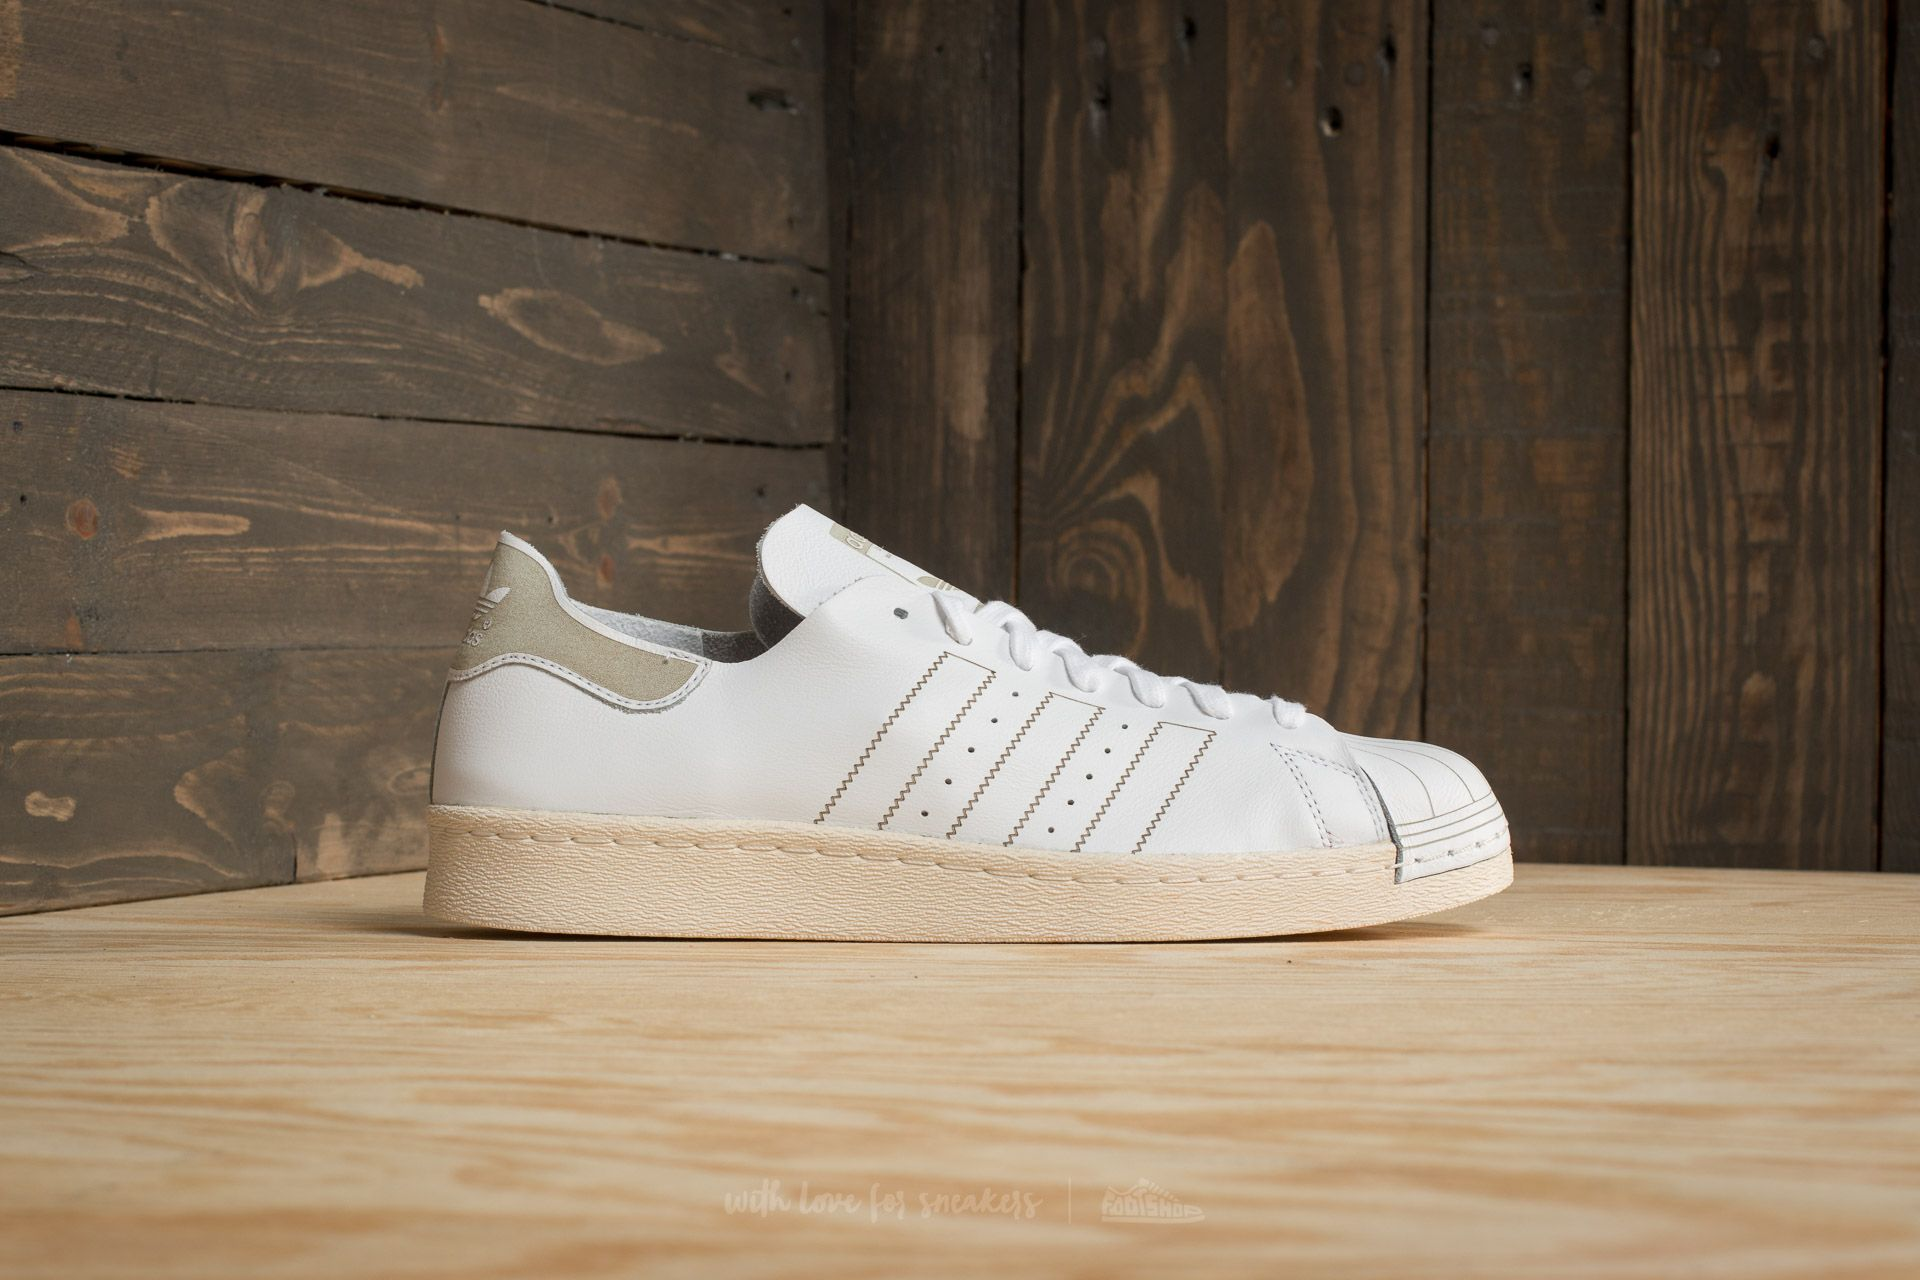 ... czech adidas superstar 80s decon ftw white ftw white vintage white at a great  price 22197 5a9bb792af2d6